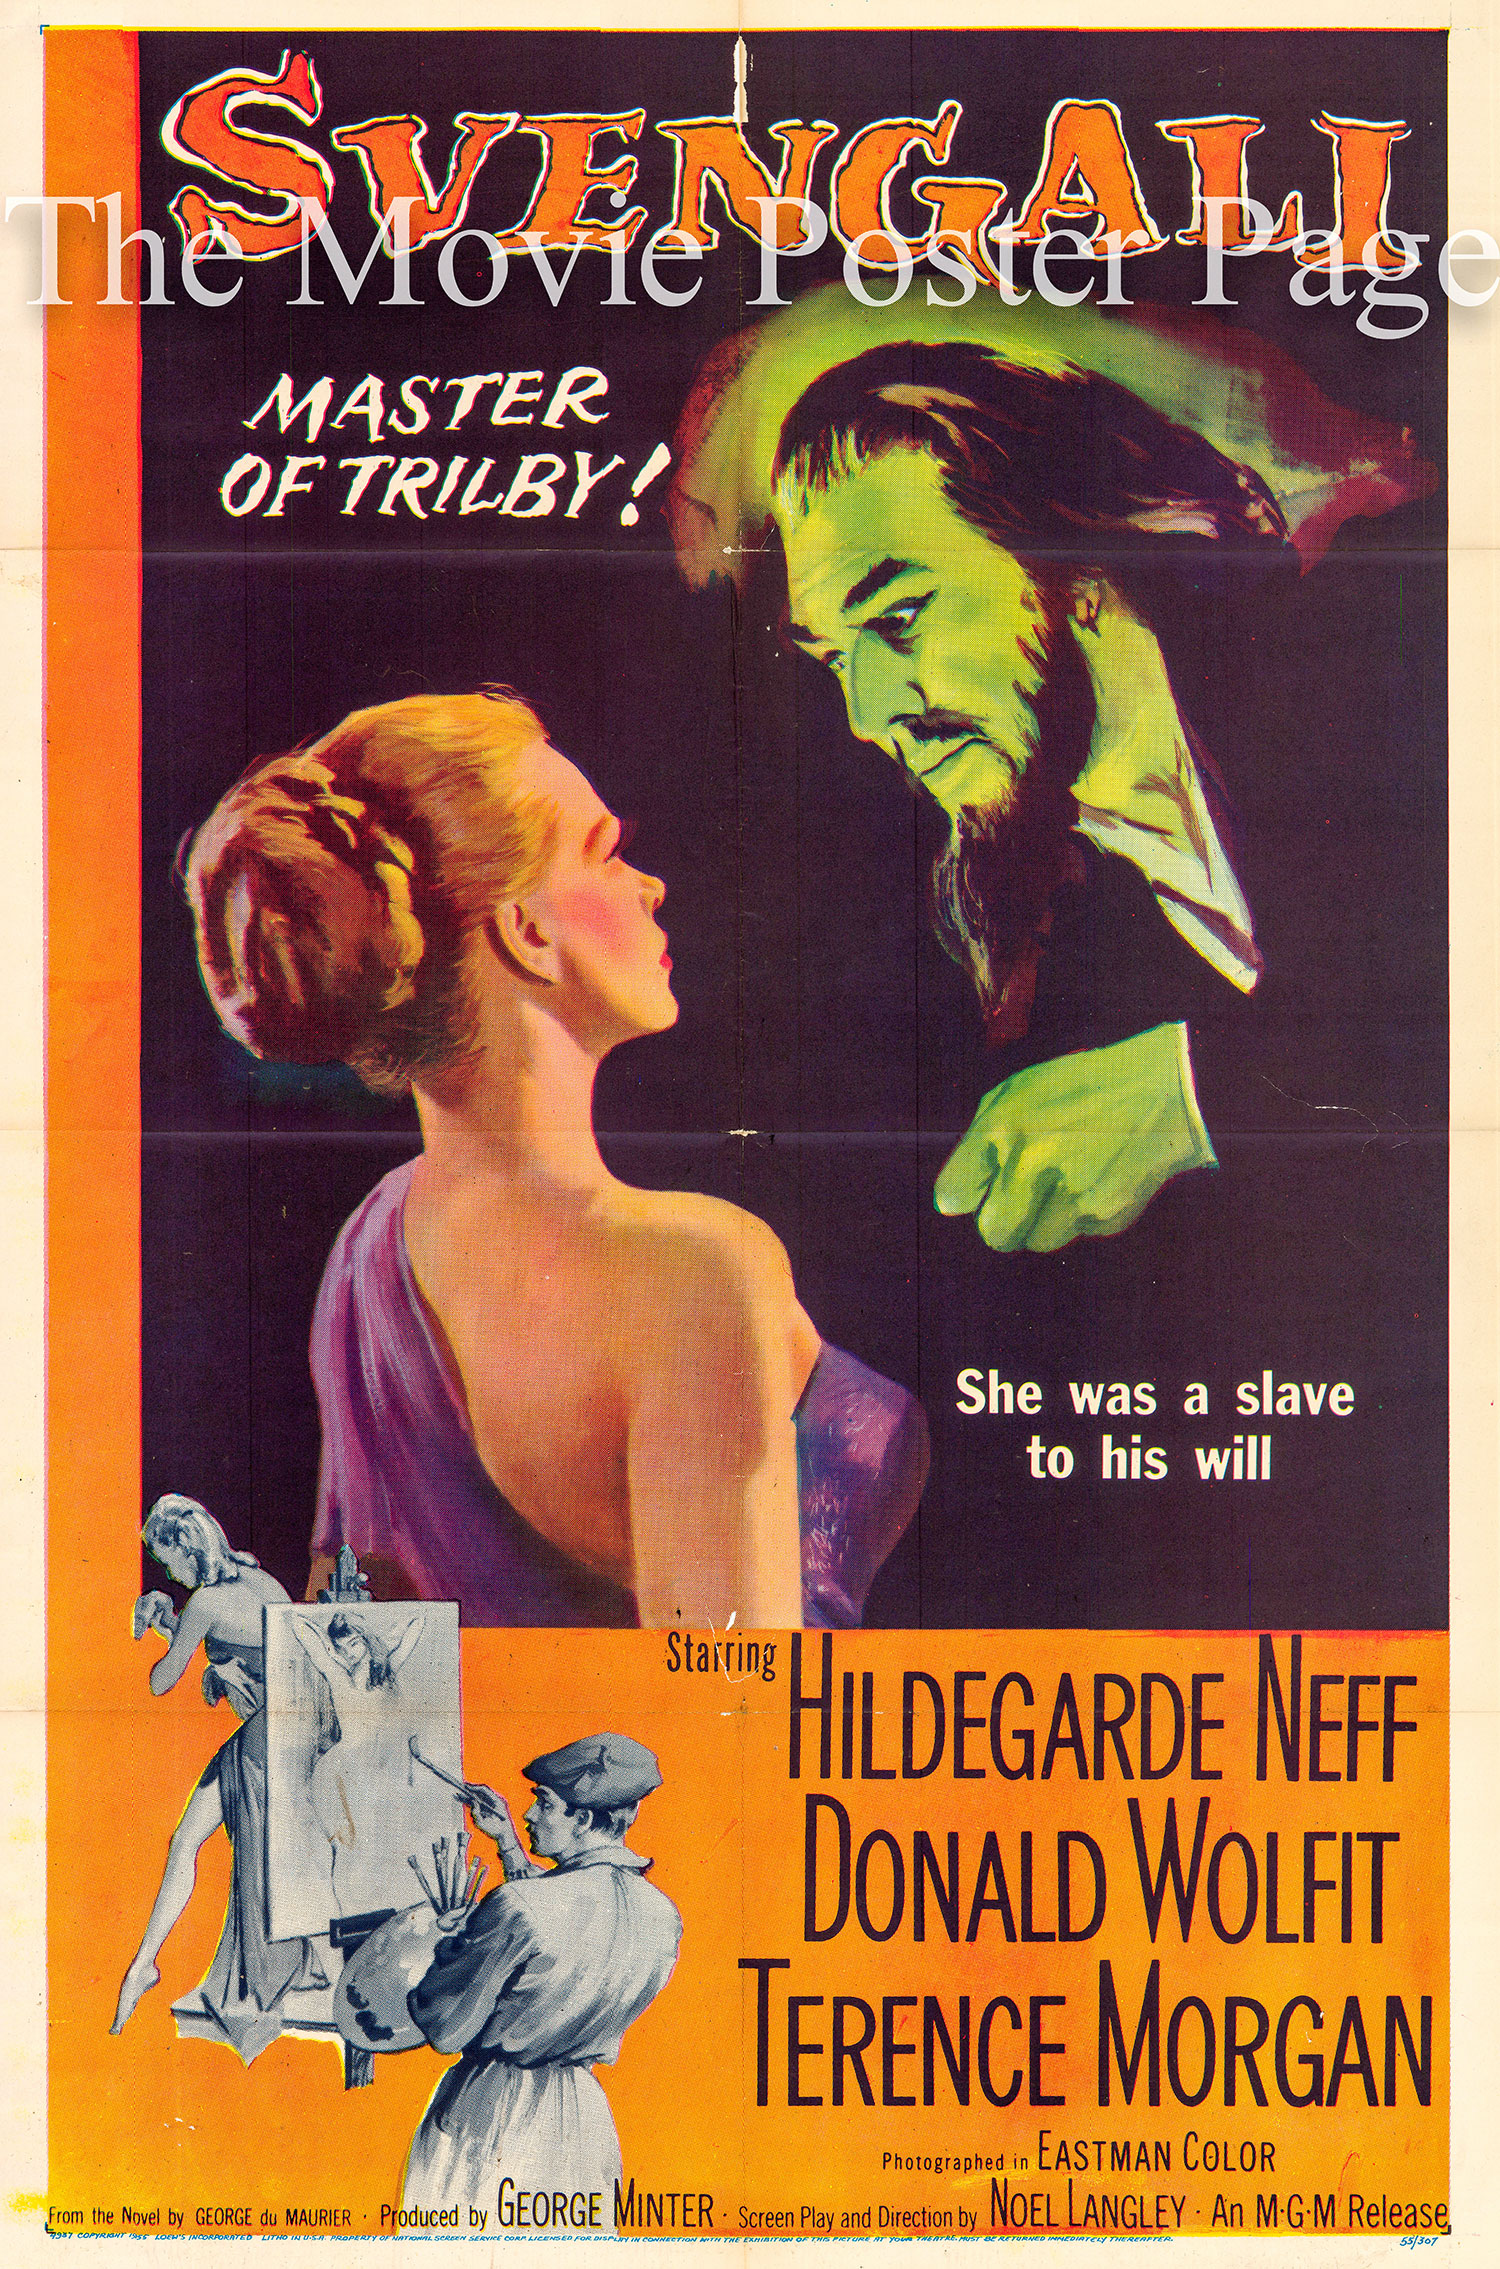 Pictured is a US one-sheet promotional poster for the 1955 Noel Langley film Svengali starring Hildegarde Neff.